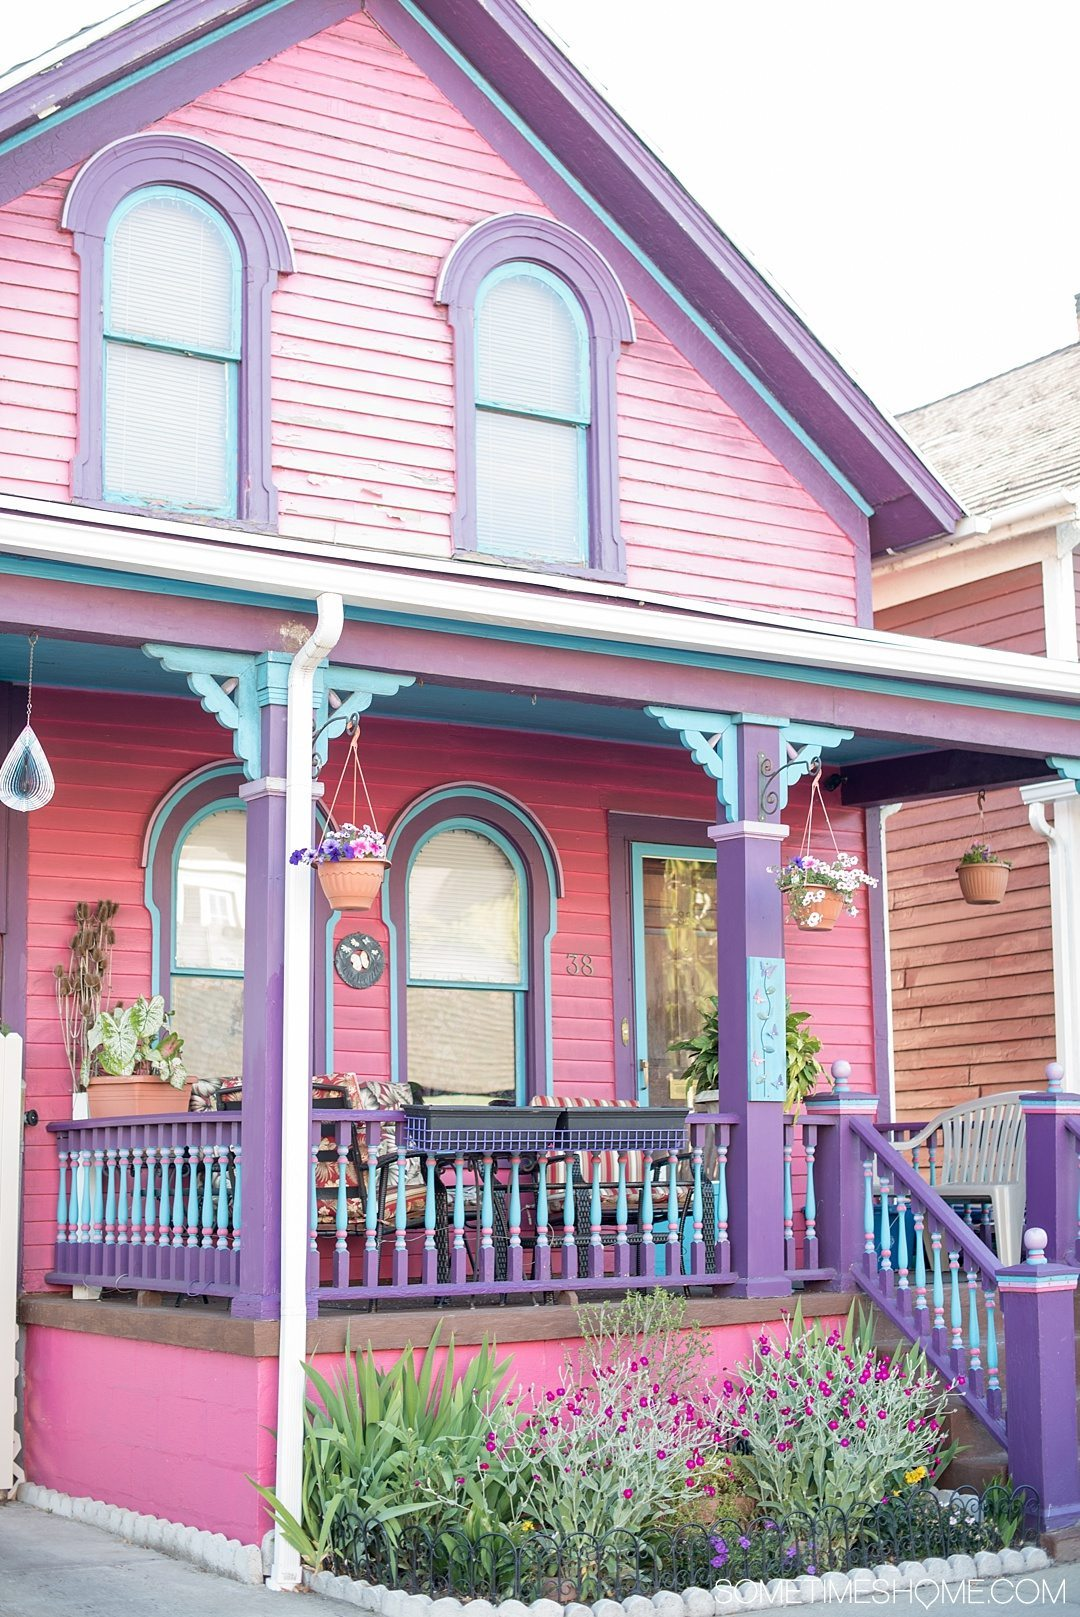 Why a Trip to Buffalo Had Me in Disbelief on Sometimes Home travel blog. Photo of a pink, blue and purple house in the city's downtown area of Allentown.